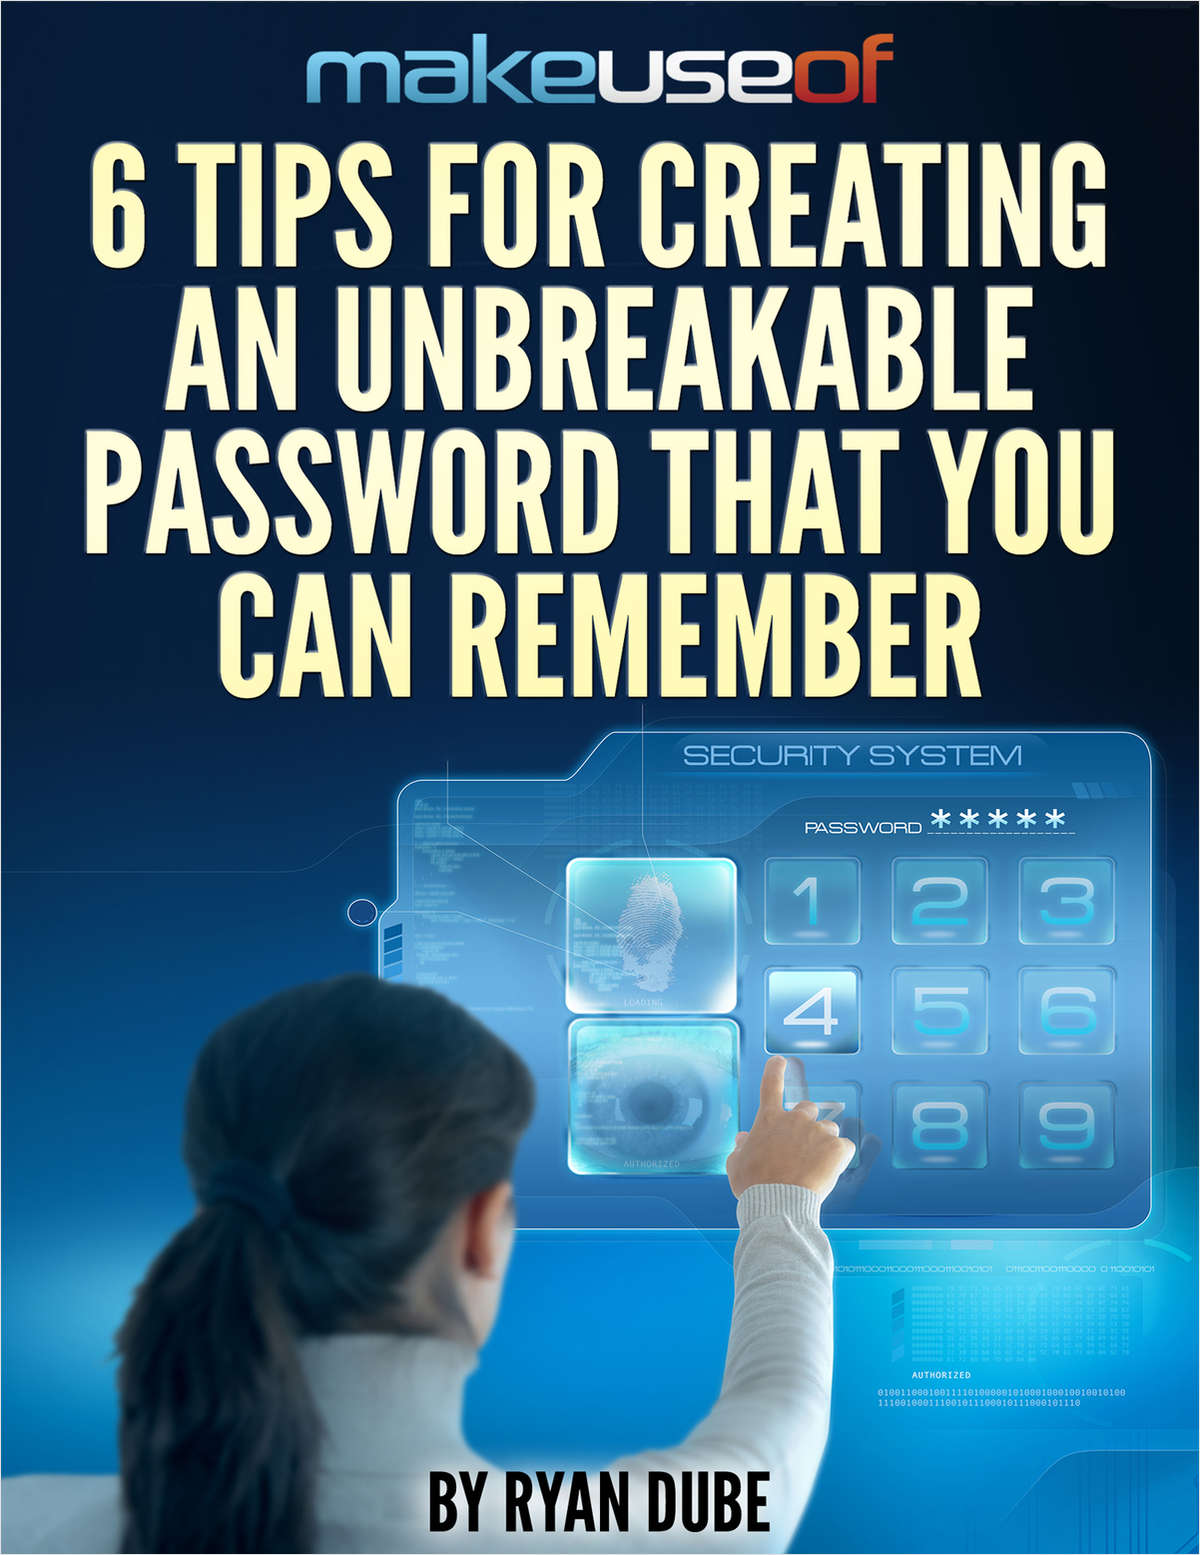 6 Tips For Creating An Unbreakable Password That You Can Remember